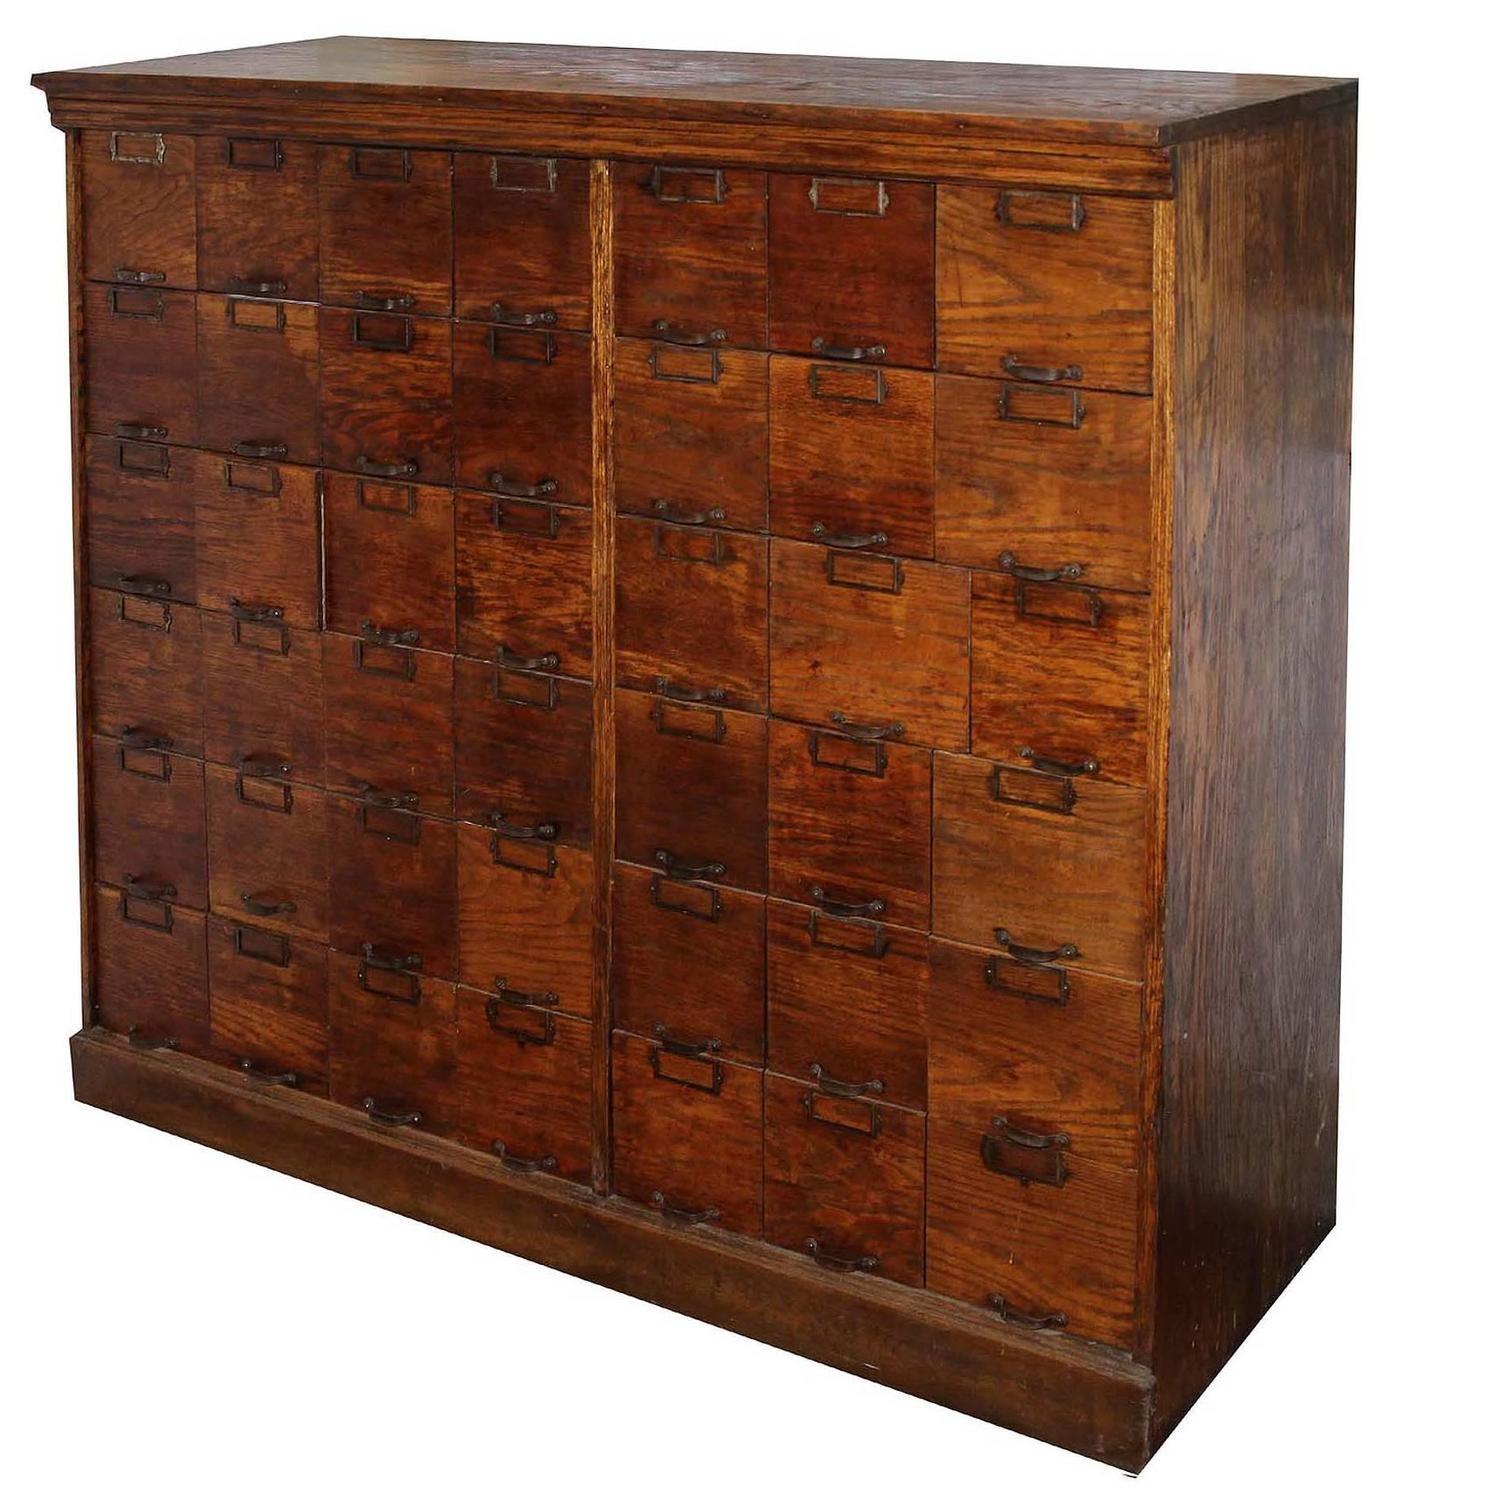 19th century store cabinet for sale at 1stdibs for Apothecary kitchen cabinets